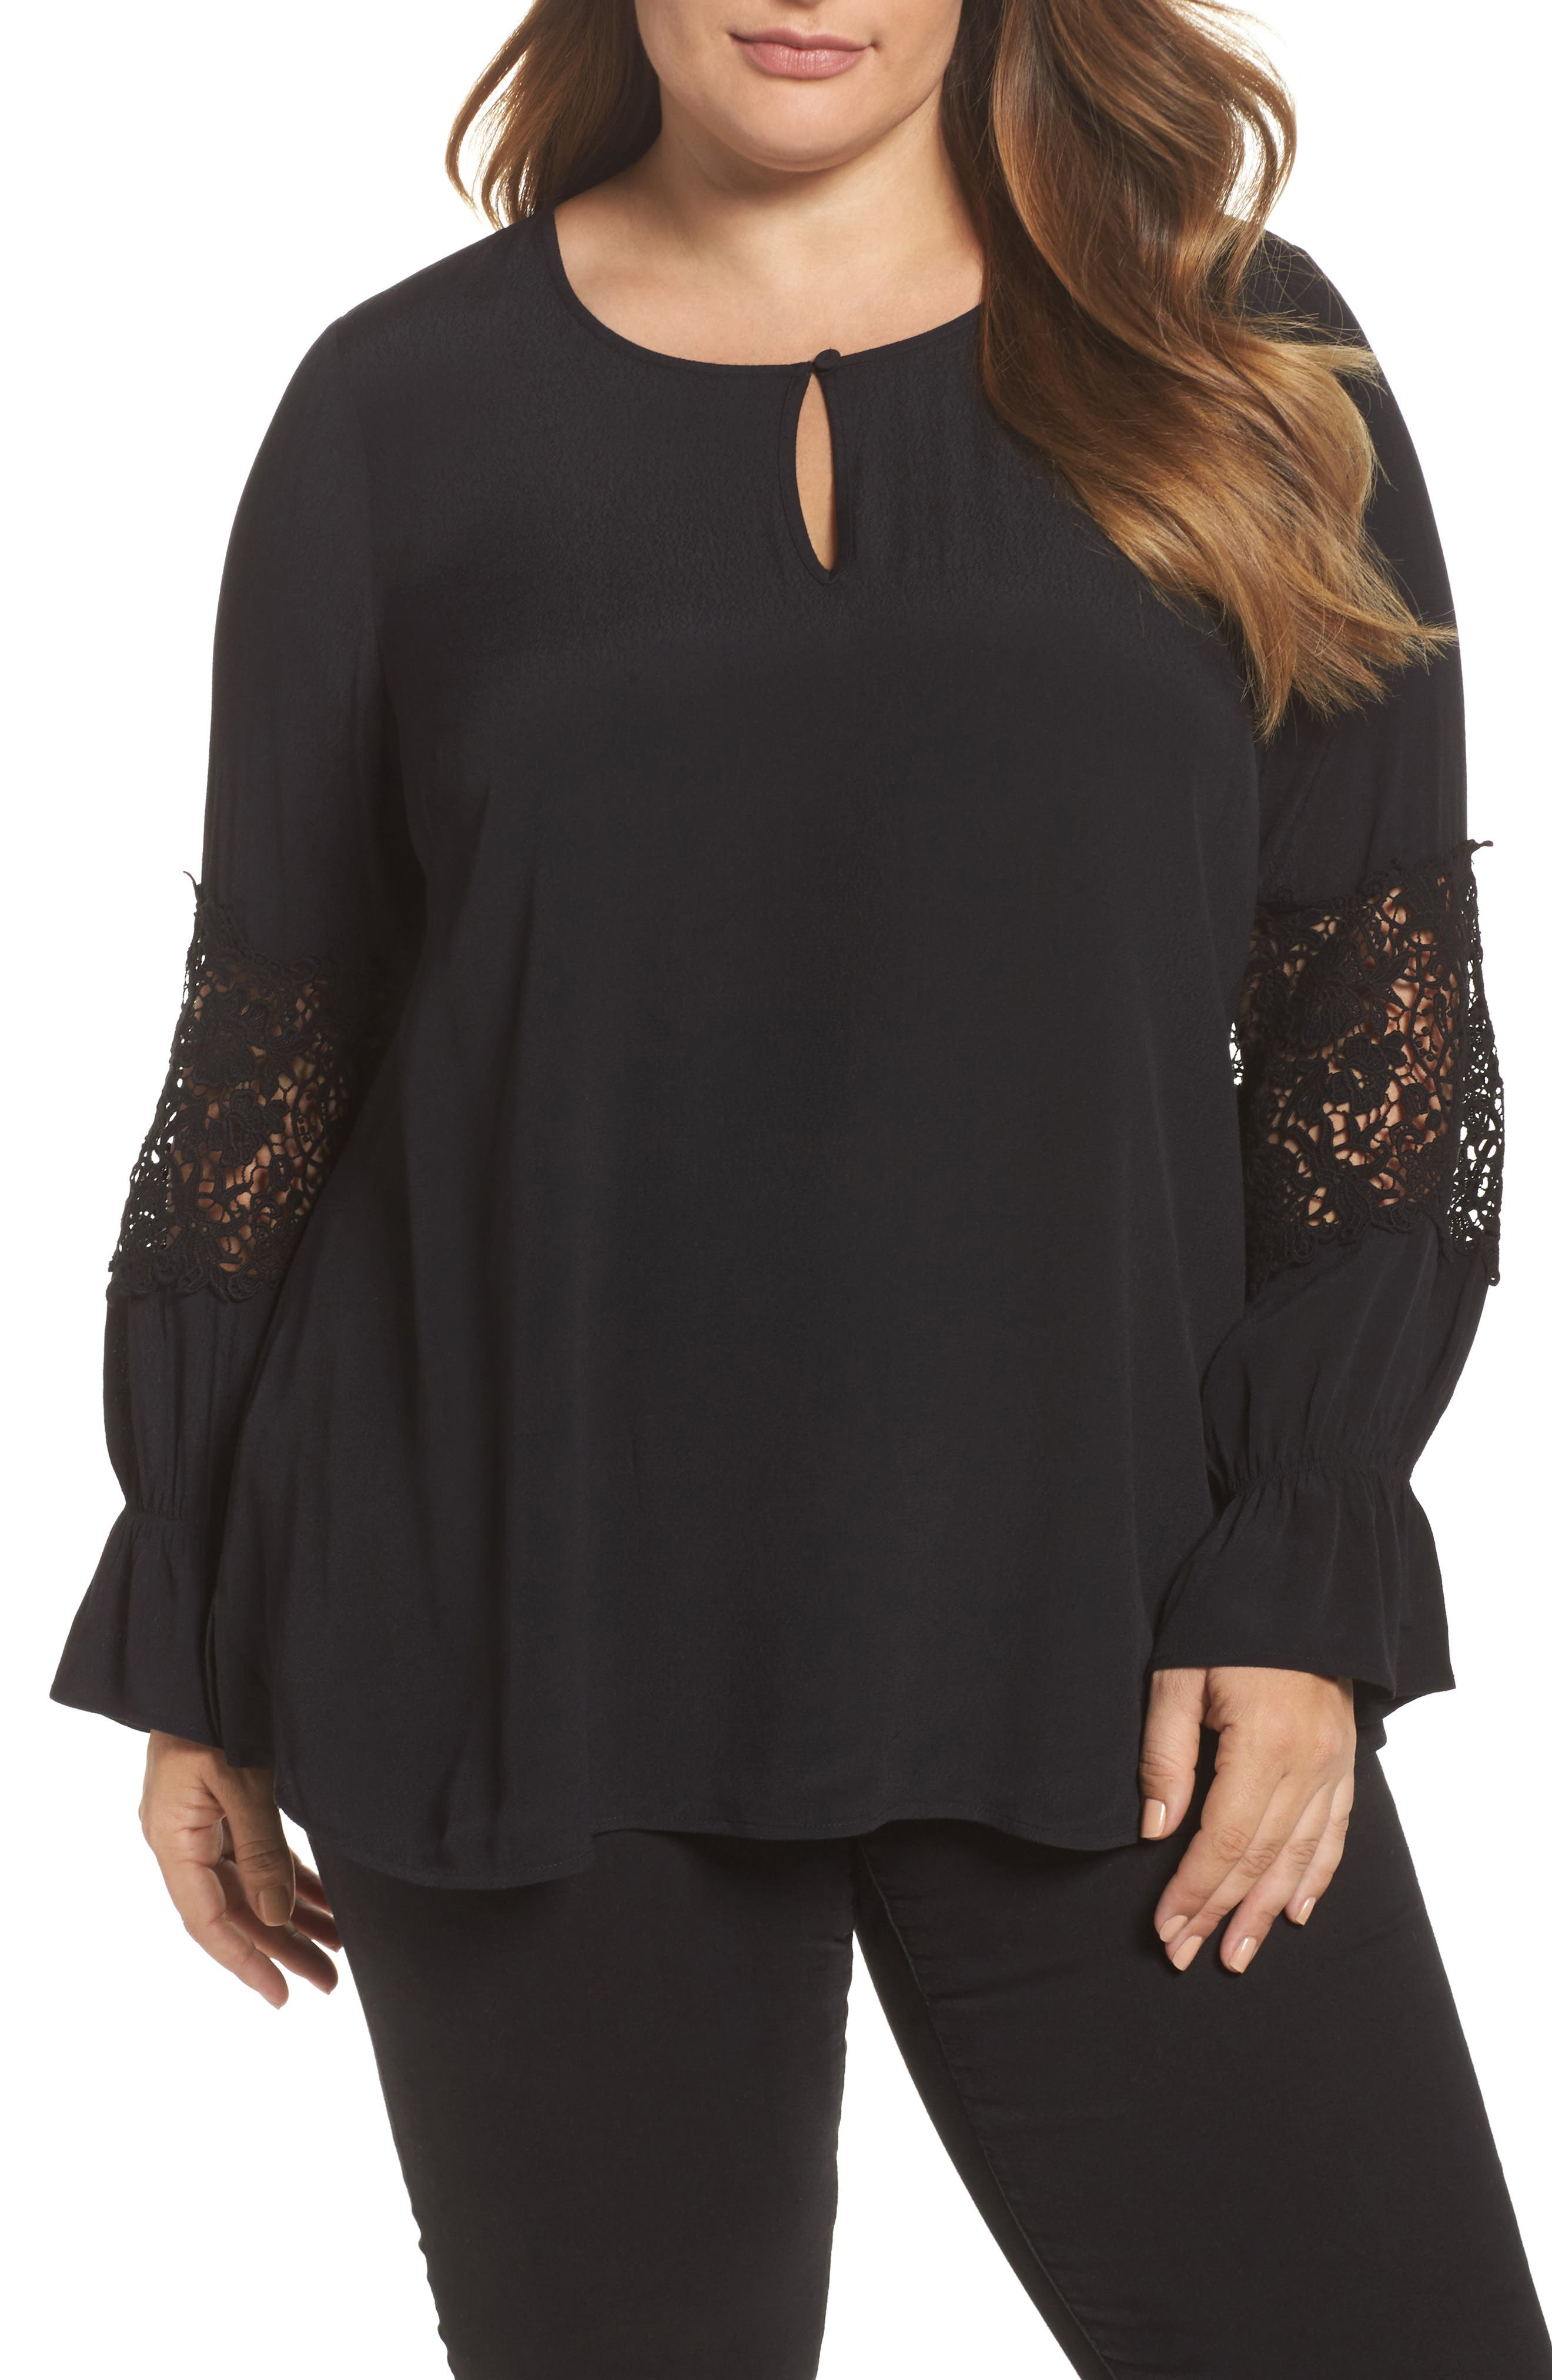 Bell Sleeve Lace Top,                             Main thumbnail 1, color,                             002